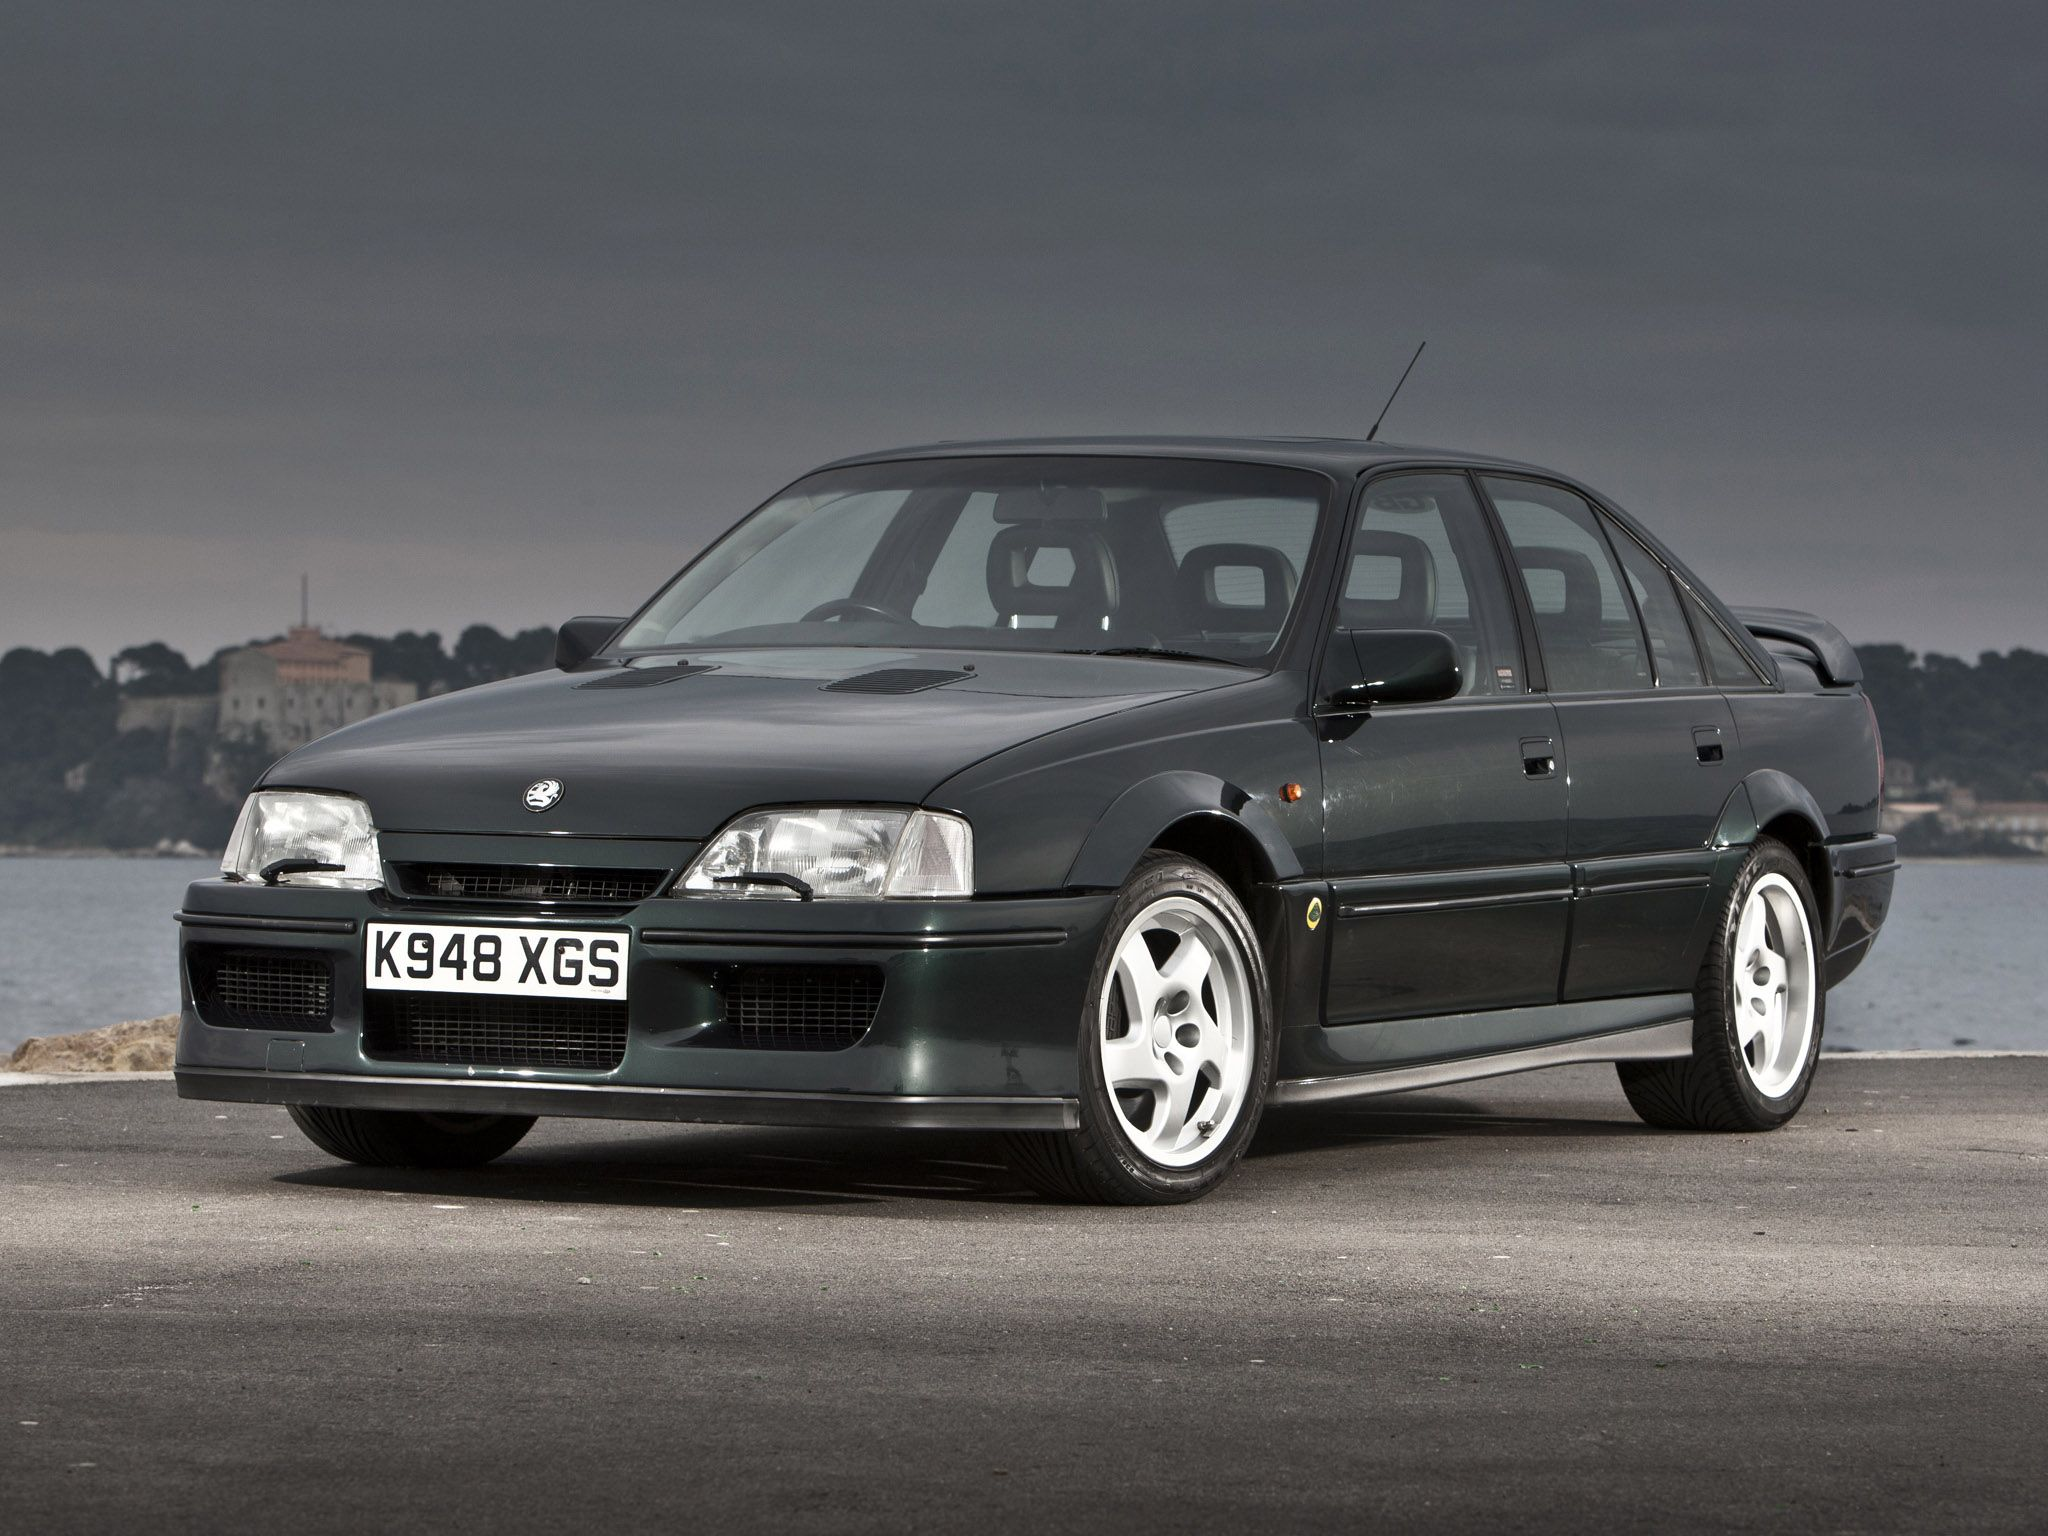 Vehicle · 1990 Vauxhall Lotus Carlton